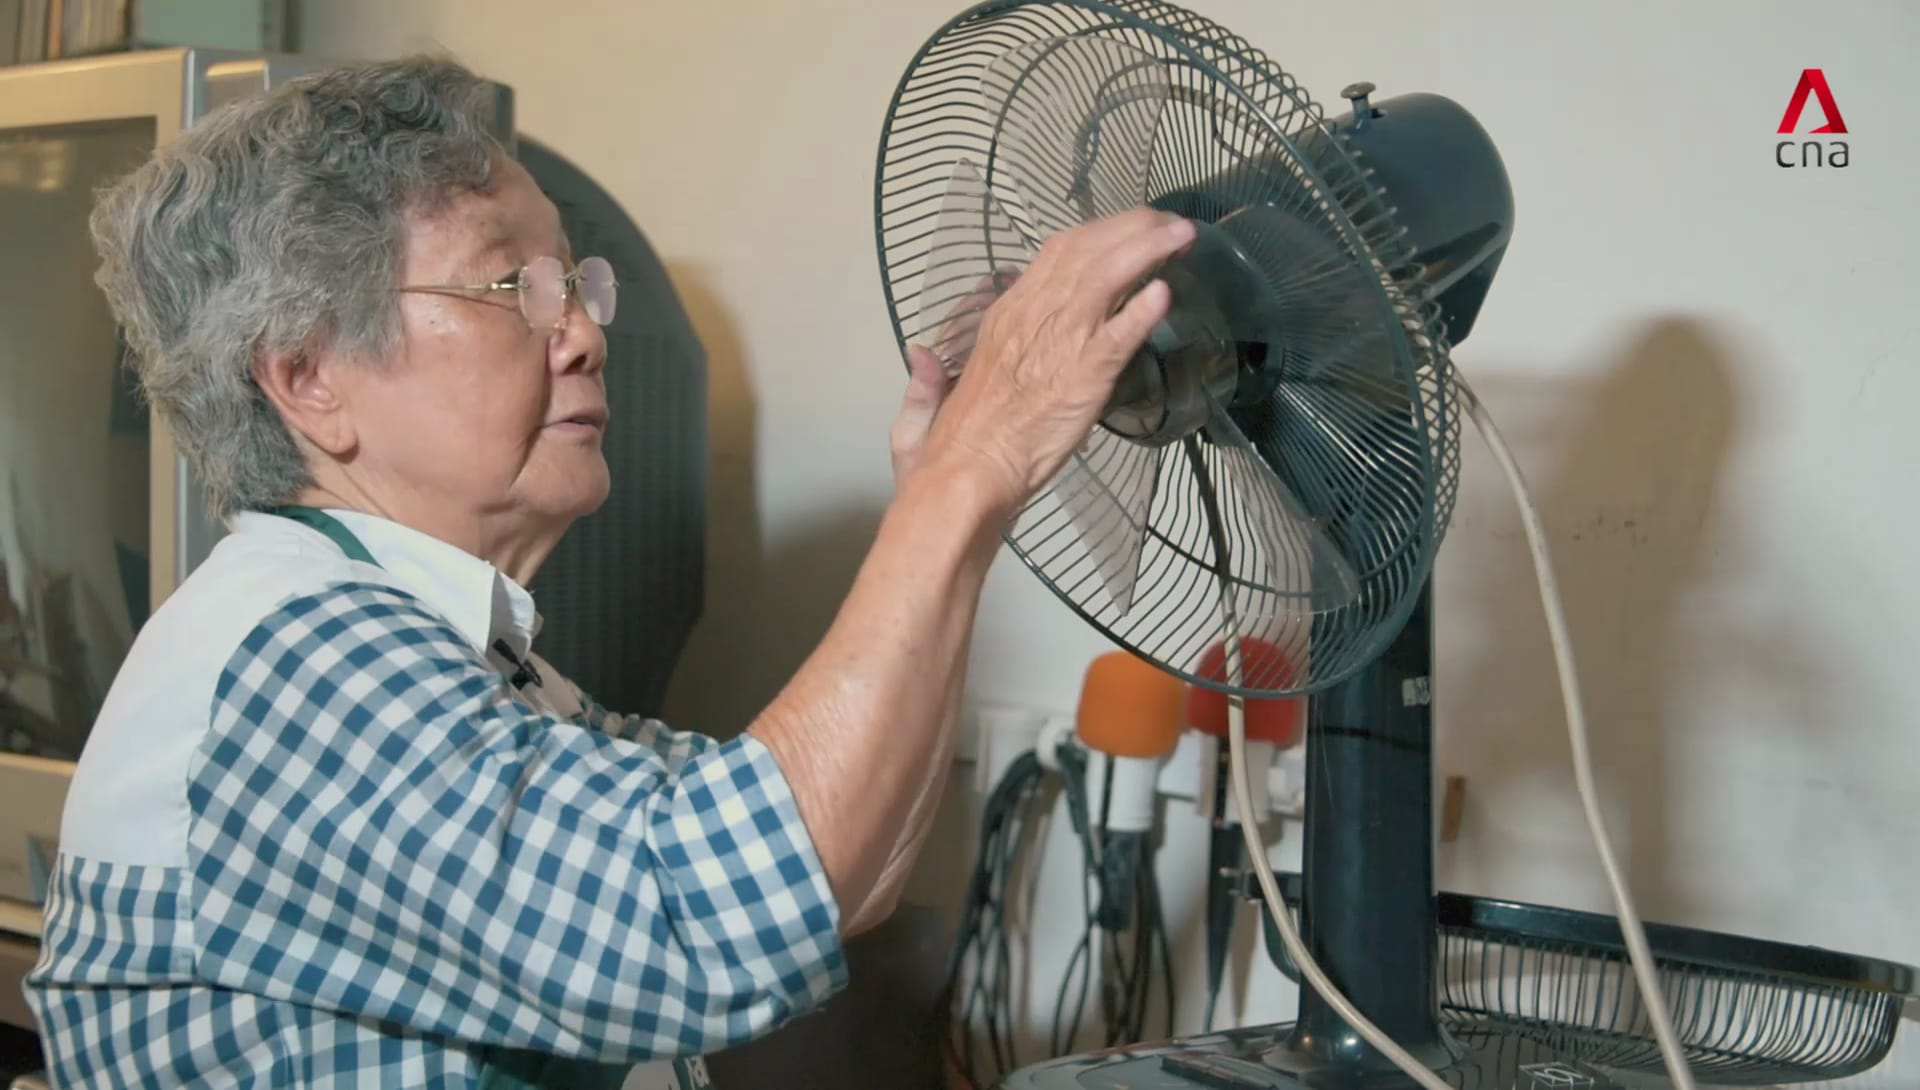 The 79-year-old self-taught handywoman who helps her neighbours fix everything | Video